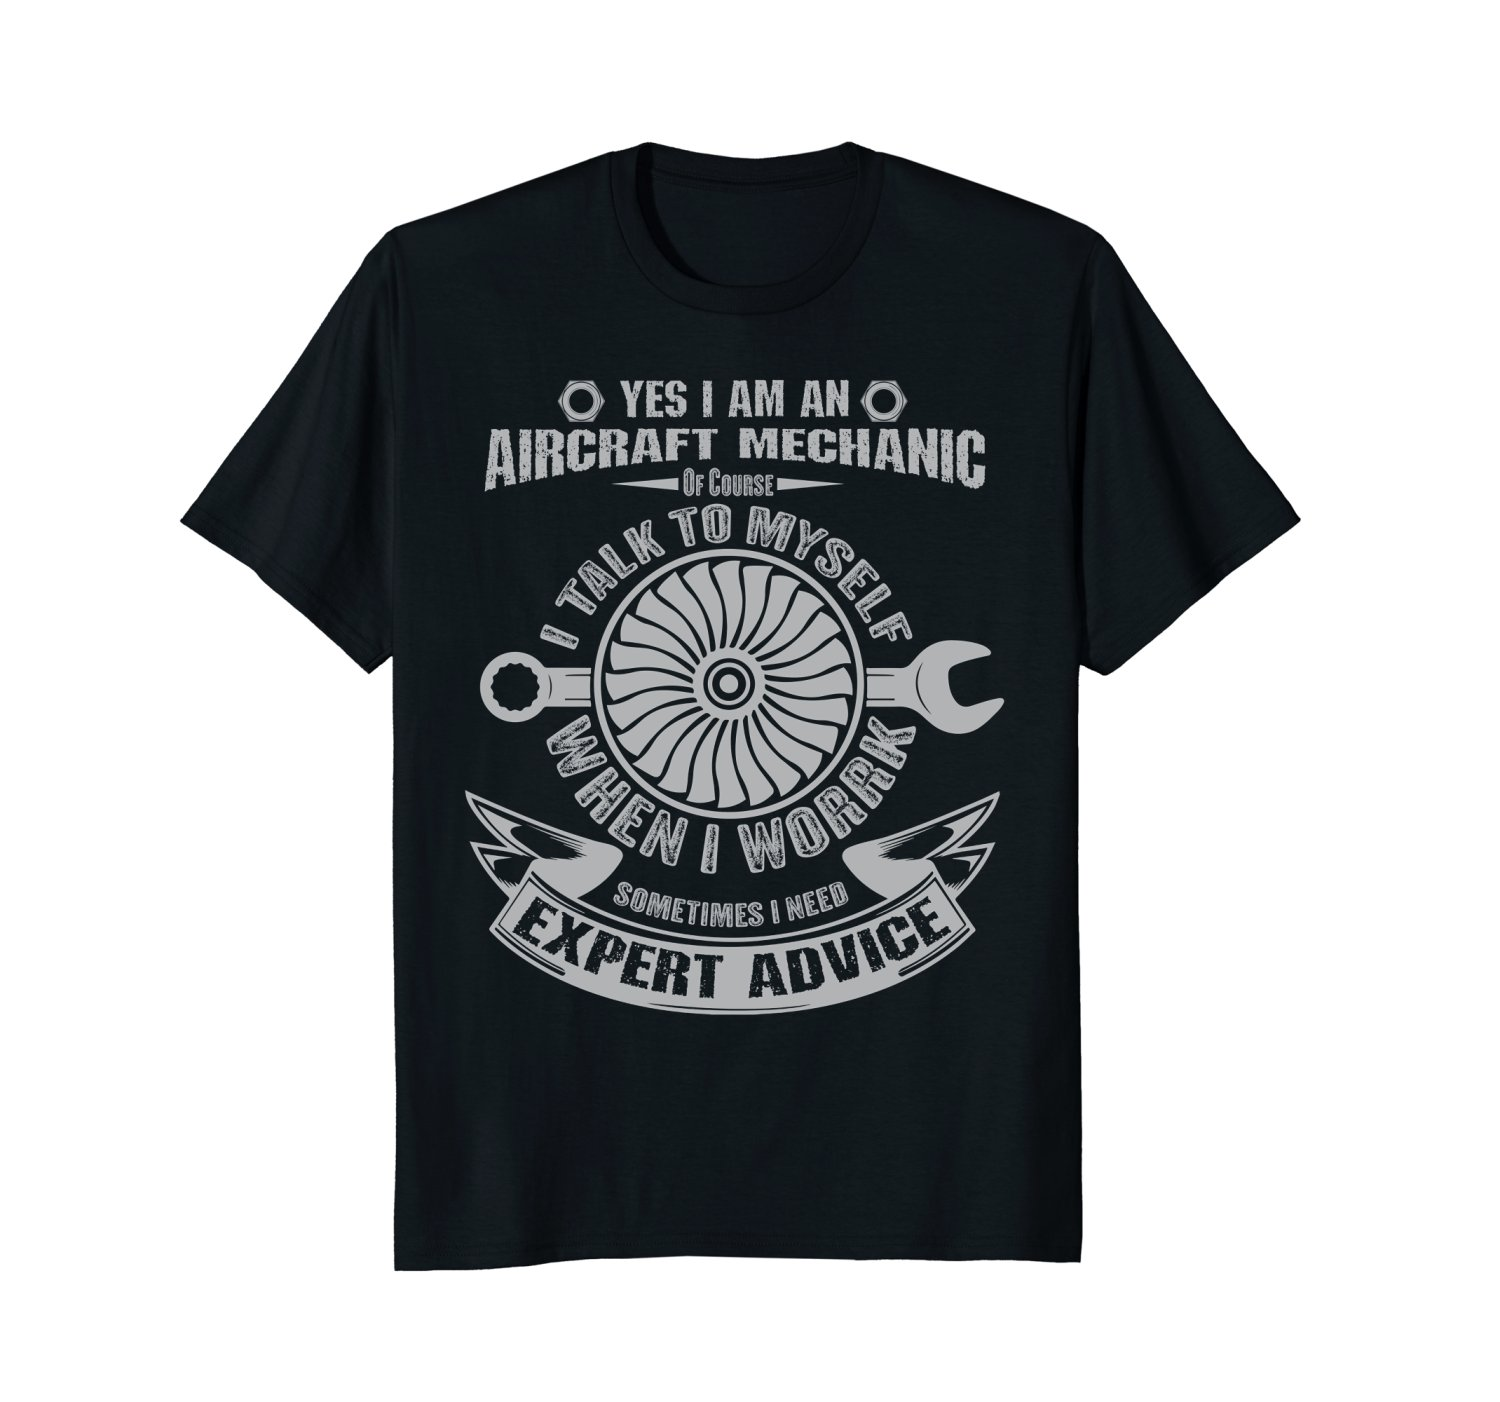 2019 New Summer Cool Tee Shirt I'm An Aircraft Mechanic T-Shirt Funny Quote Aviation Safety Cotton T-shirt